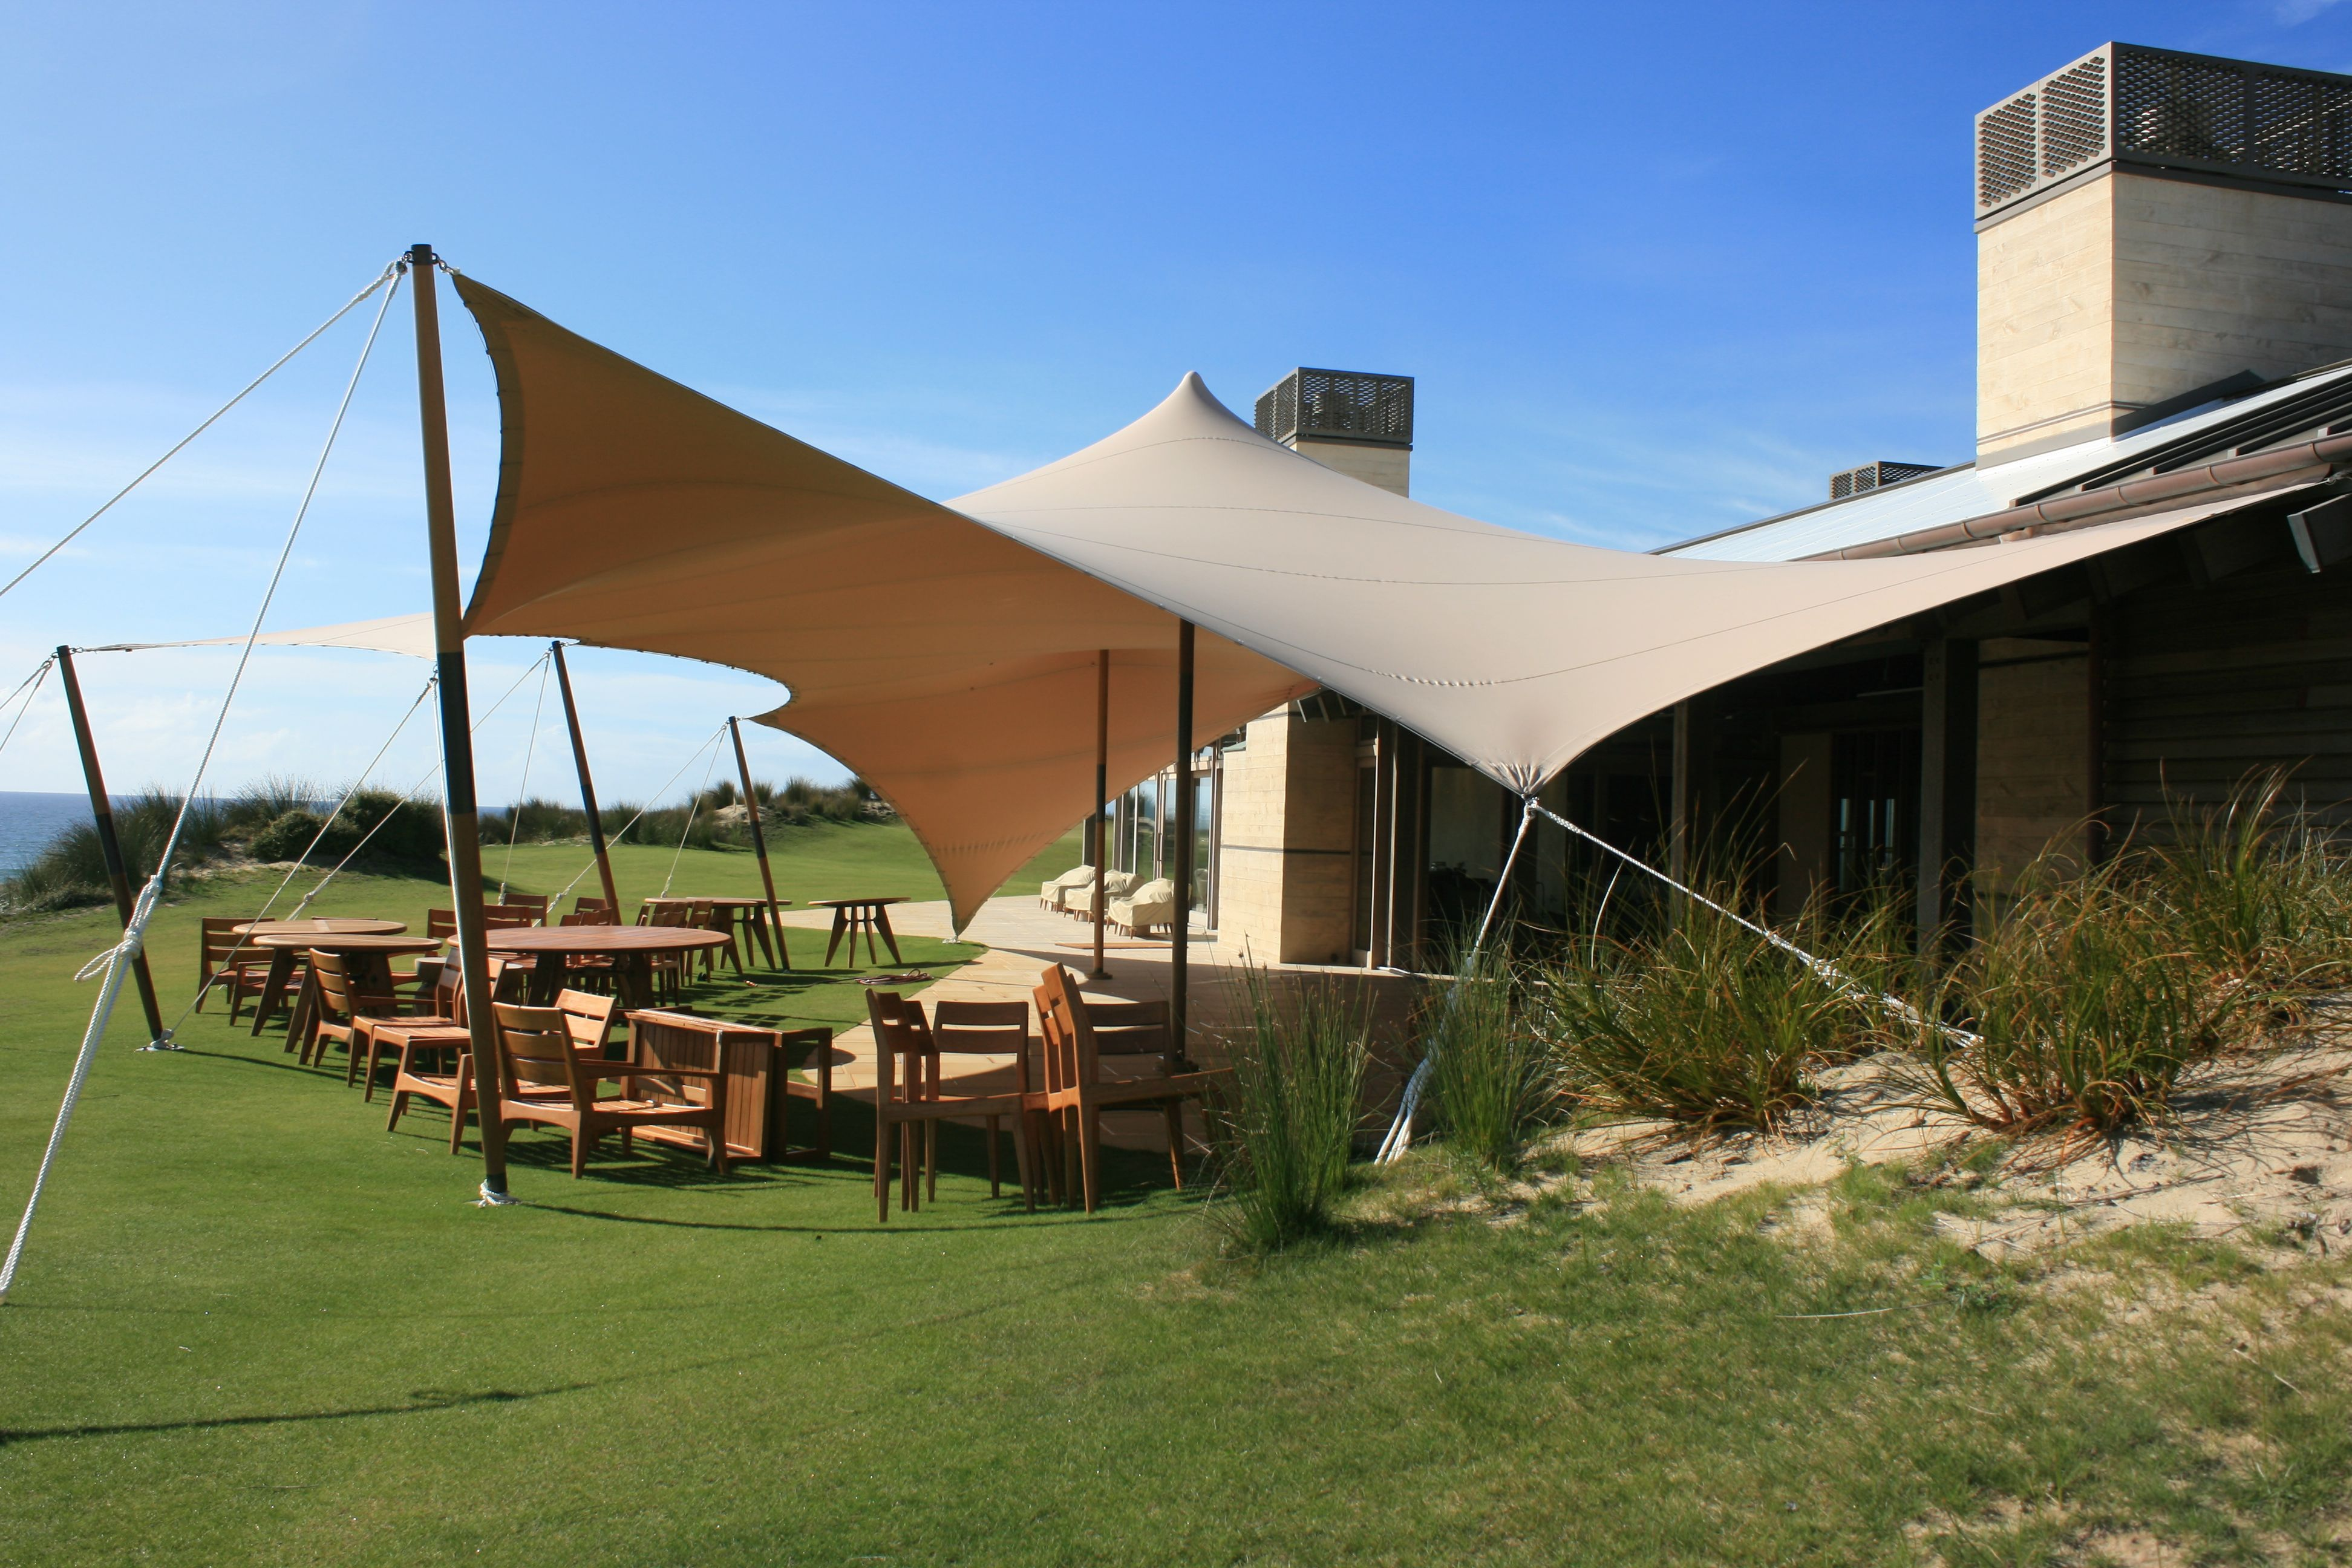 Stretch Tent Awning. For semi permanent flexible outdoor cover - .stretchstructures.com & Stretch Tent Awning. For semi permanent flexible outdoor cover ...